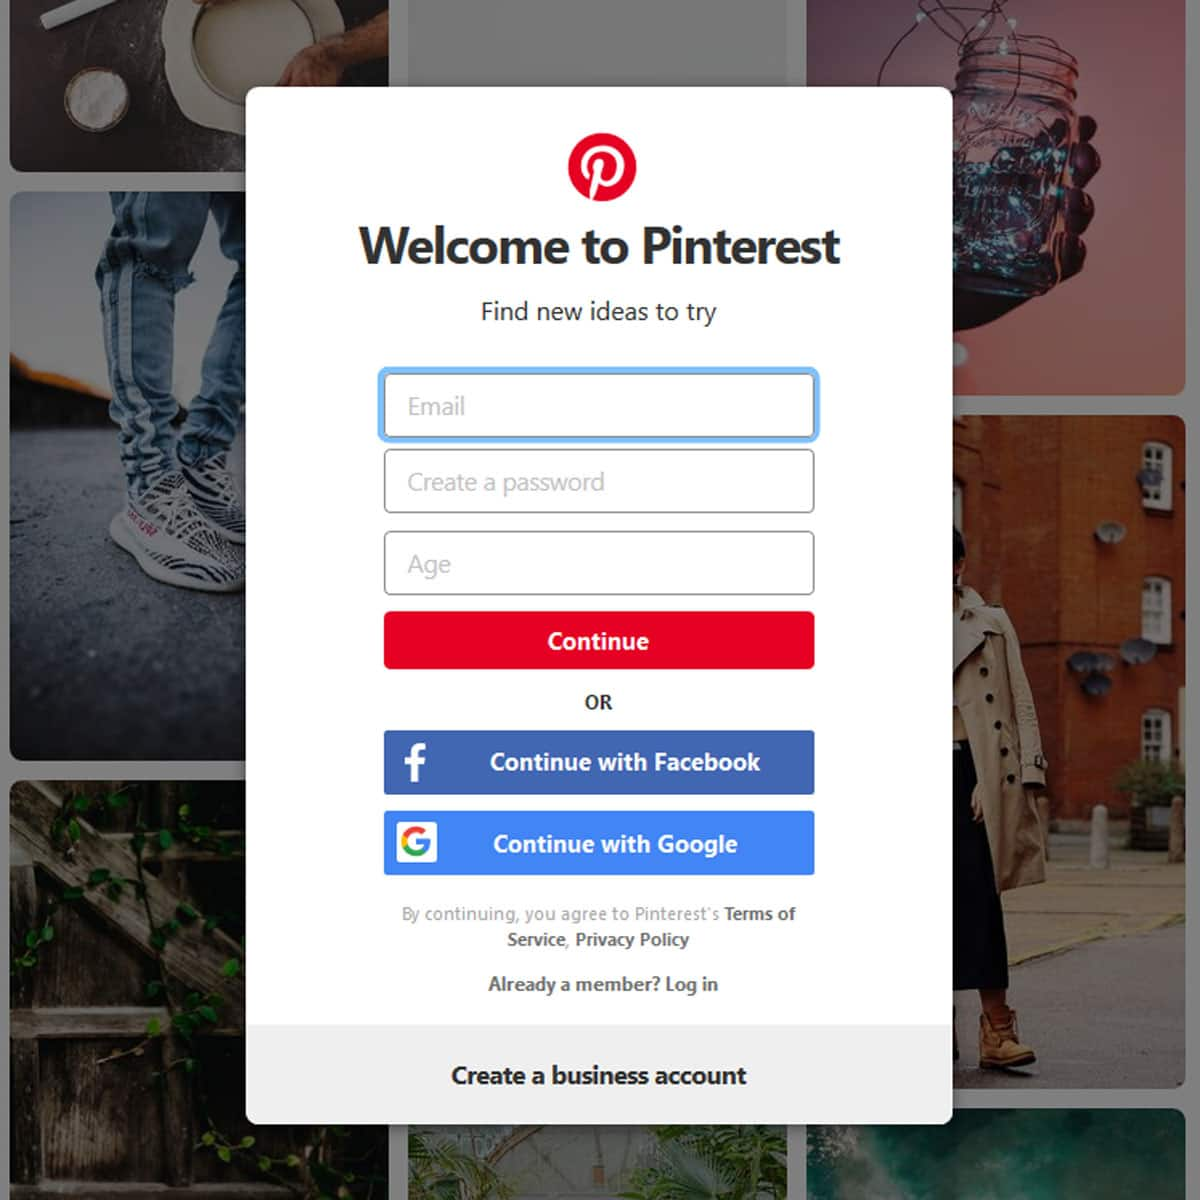 log into your Pinterest account